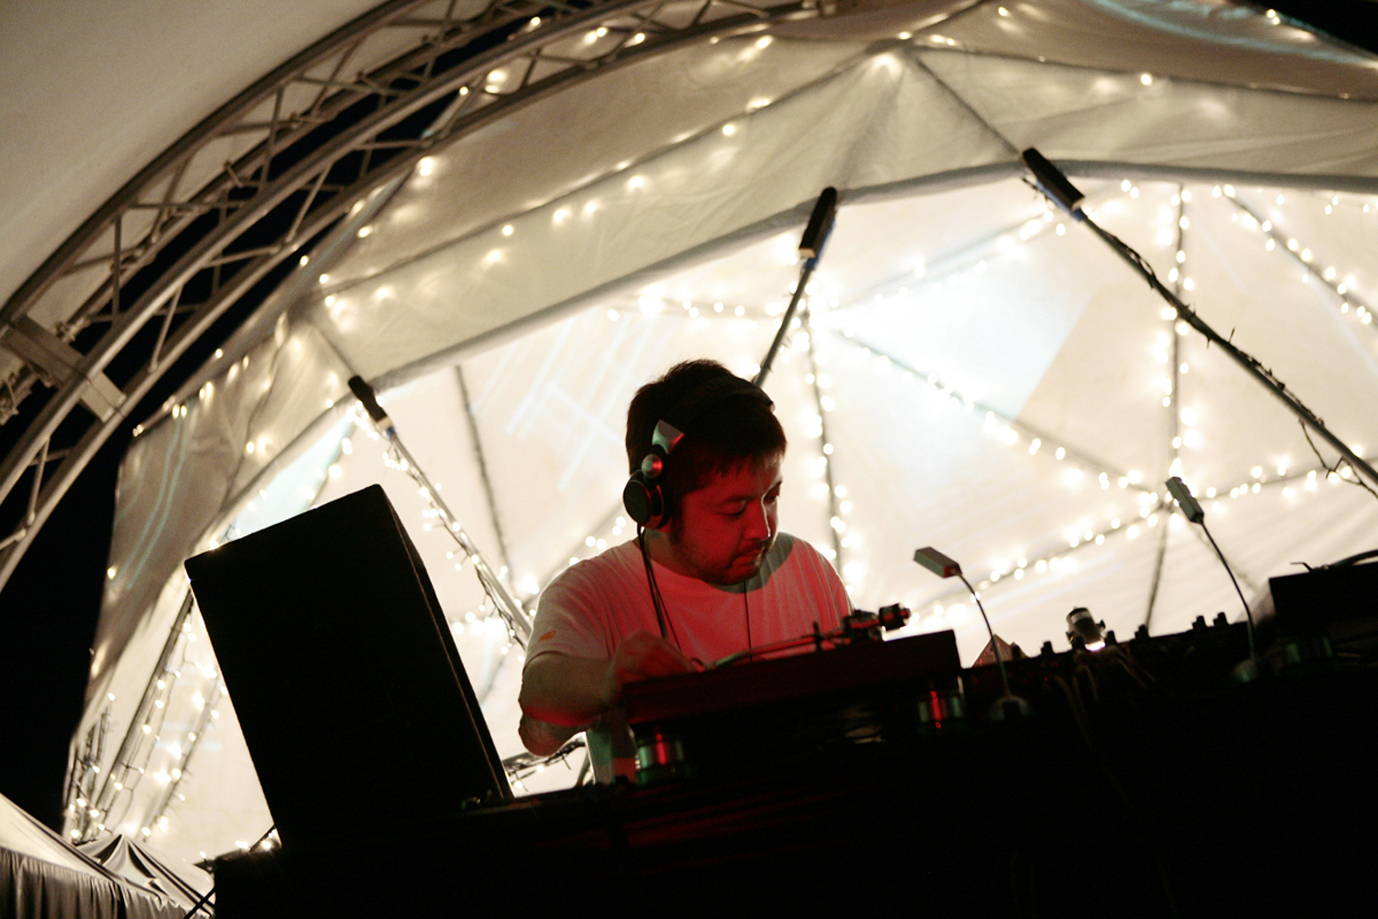 Highly respected: Jun Seba, aka Nujabes, is still popular with music fans five years after his untimely death. | YOSHIHARU OTA